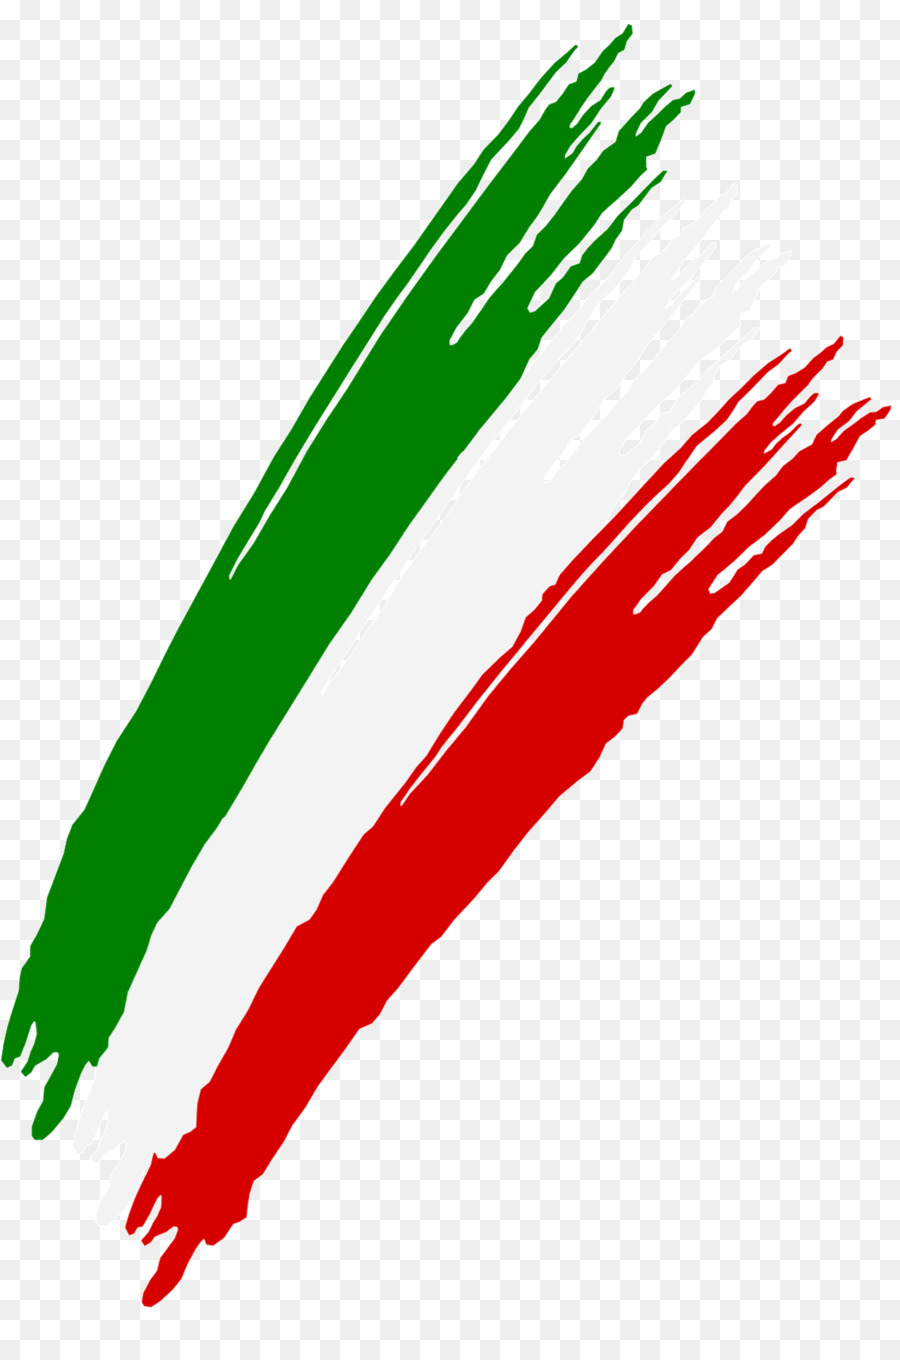 flag of italy flag of mexico culture of italy clip art leaf clip art free leaf clip art fall